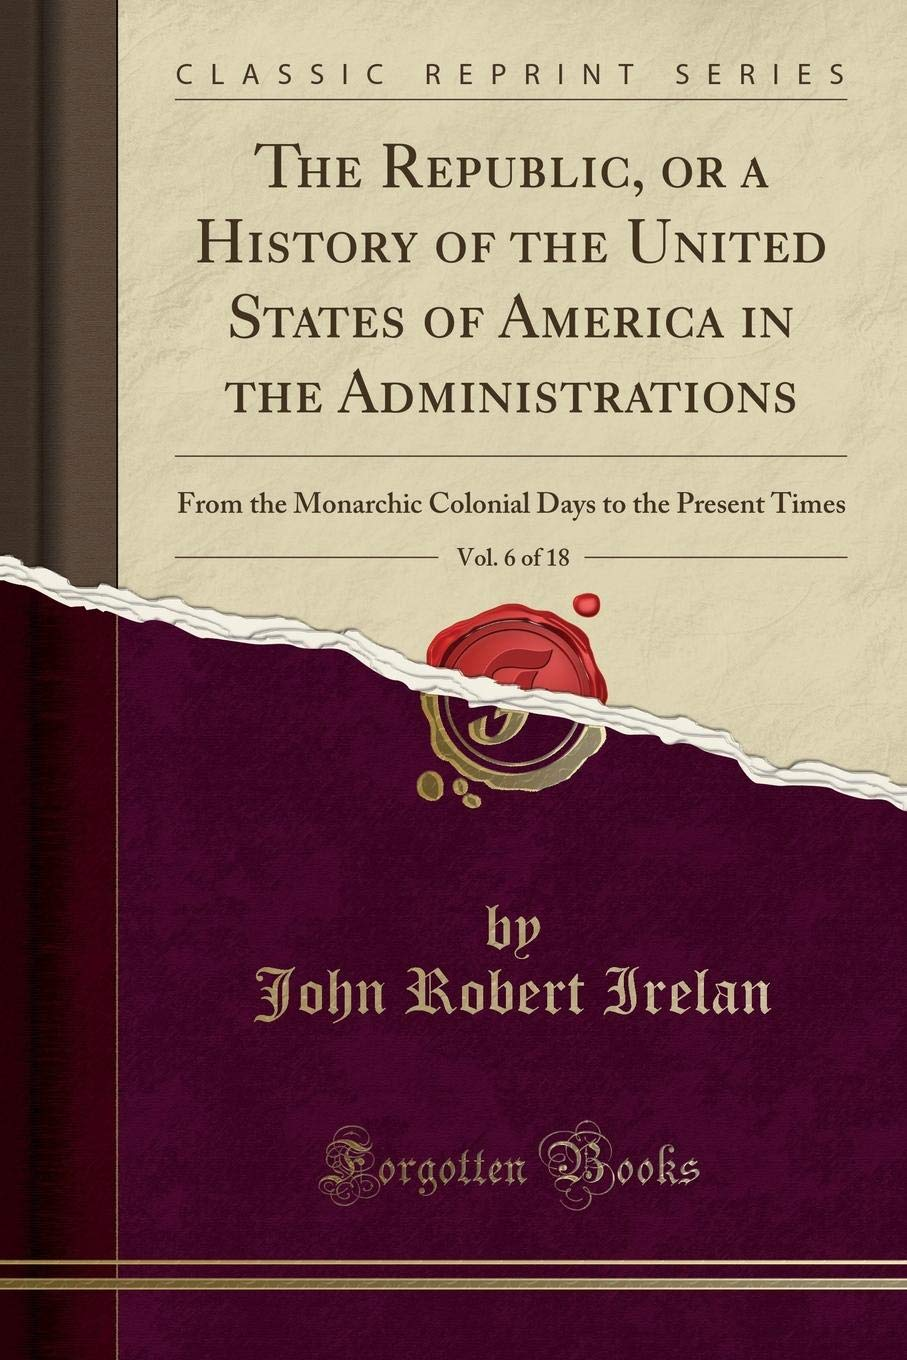 Read Online The Republic, or a History of the United States of America in the Administrations, Vol. 6 of 18: From the Monarchic Colonial Days to the Present Times (Classic Reprint) pdf